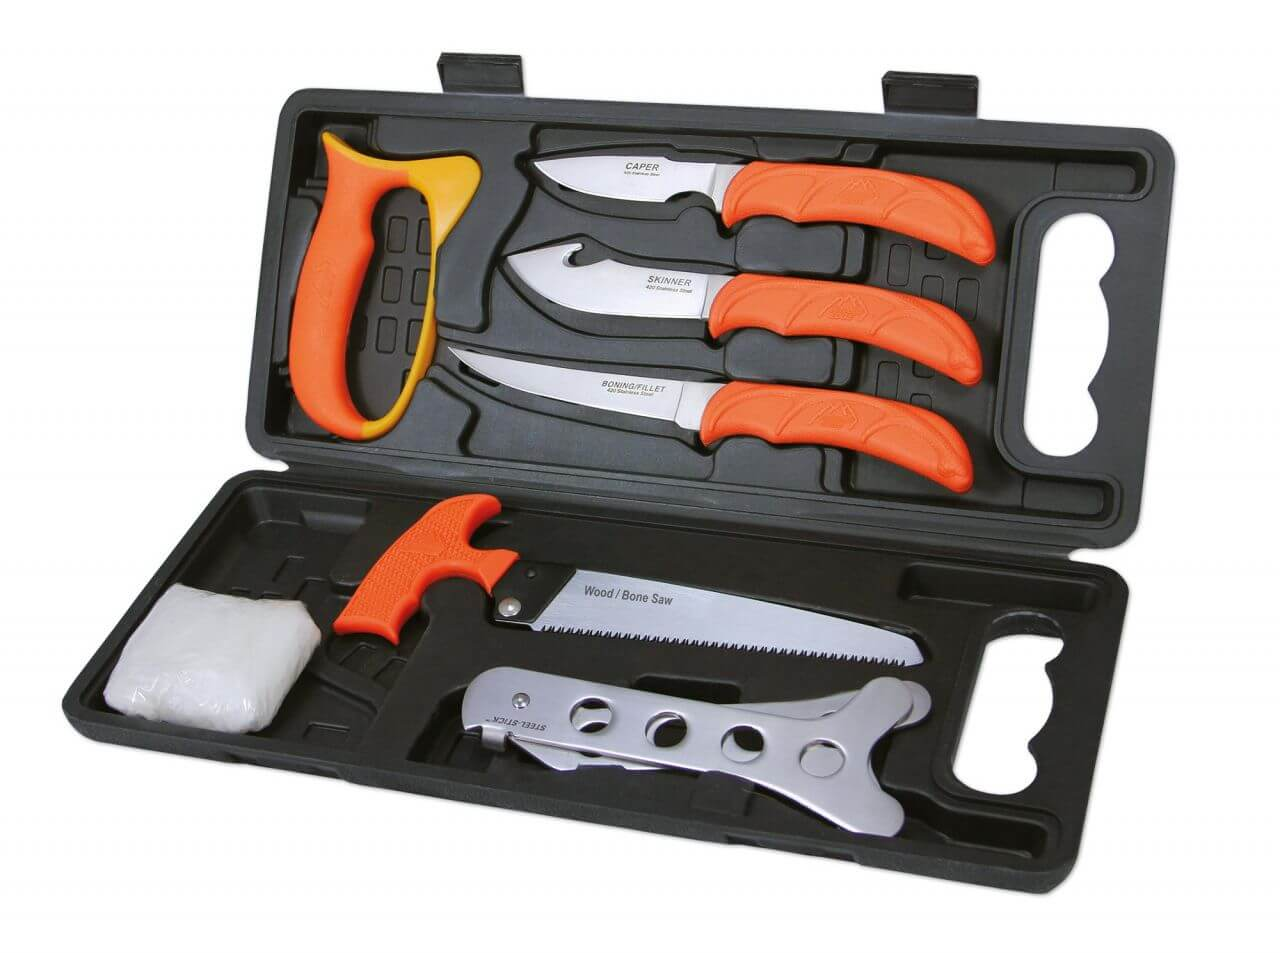 Taschenmesser Outdoor Edge Flip n/' Zip Saw Orange Jagdmesser Säge Messer